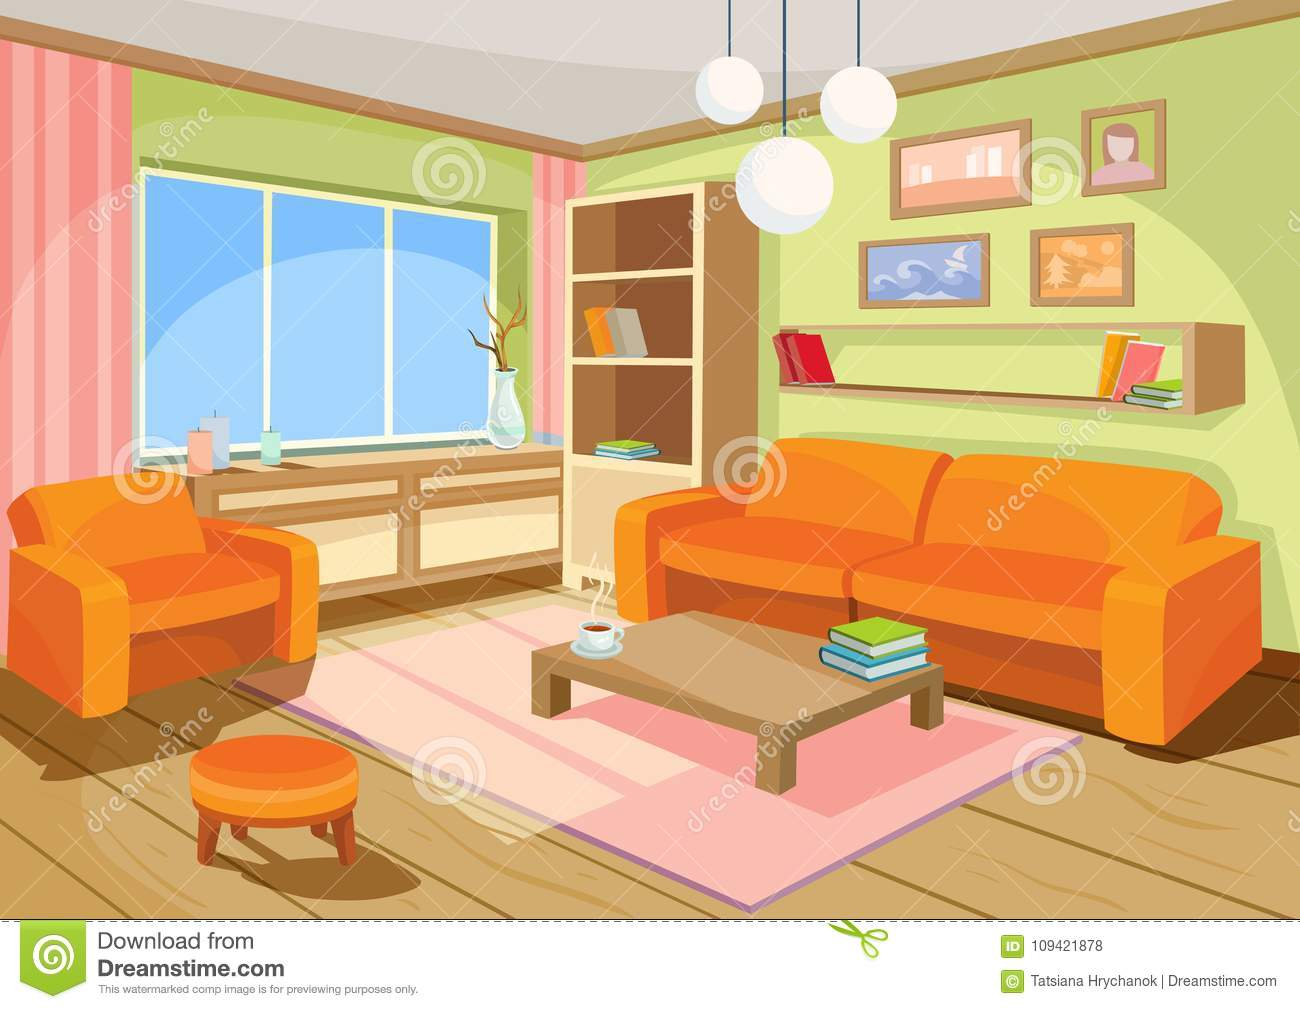 Wohnzimmer Cartoon Illustration Of A Cozy Cartoon Interior Of A Home Room A